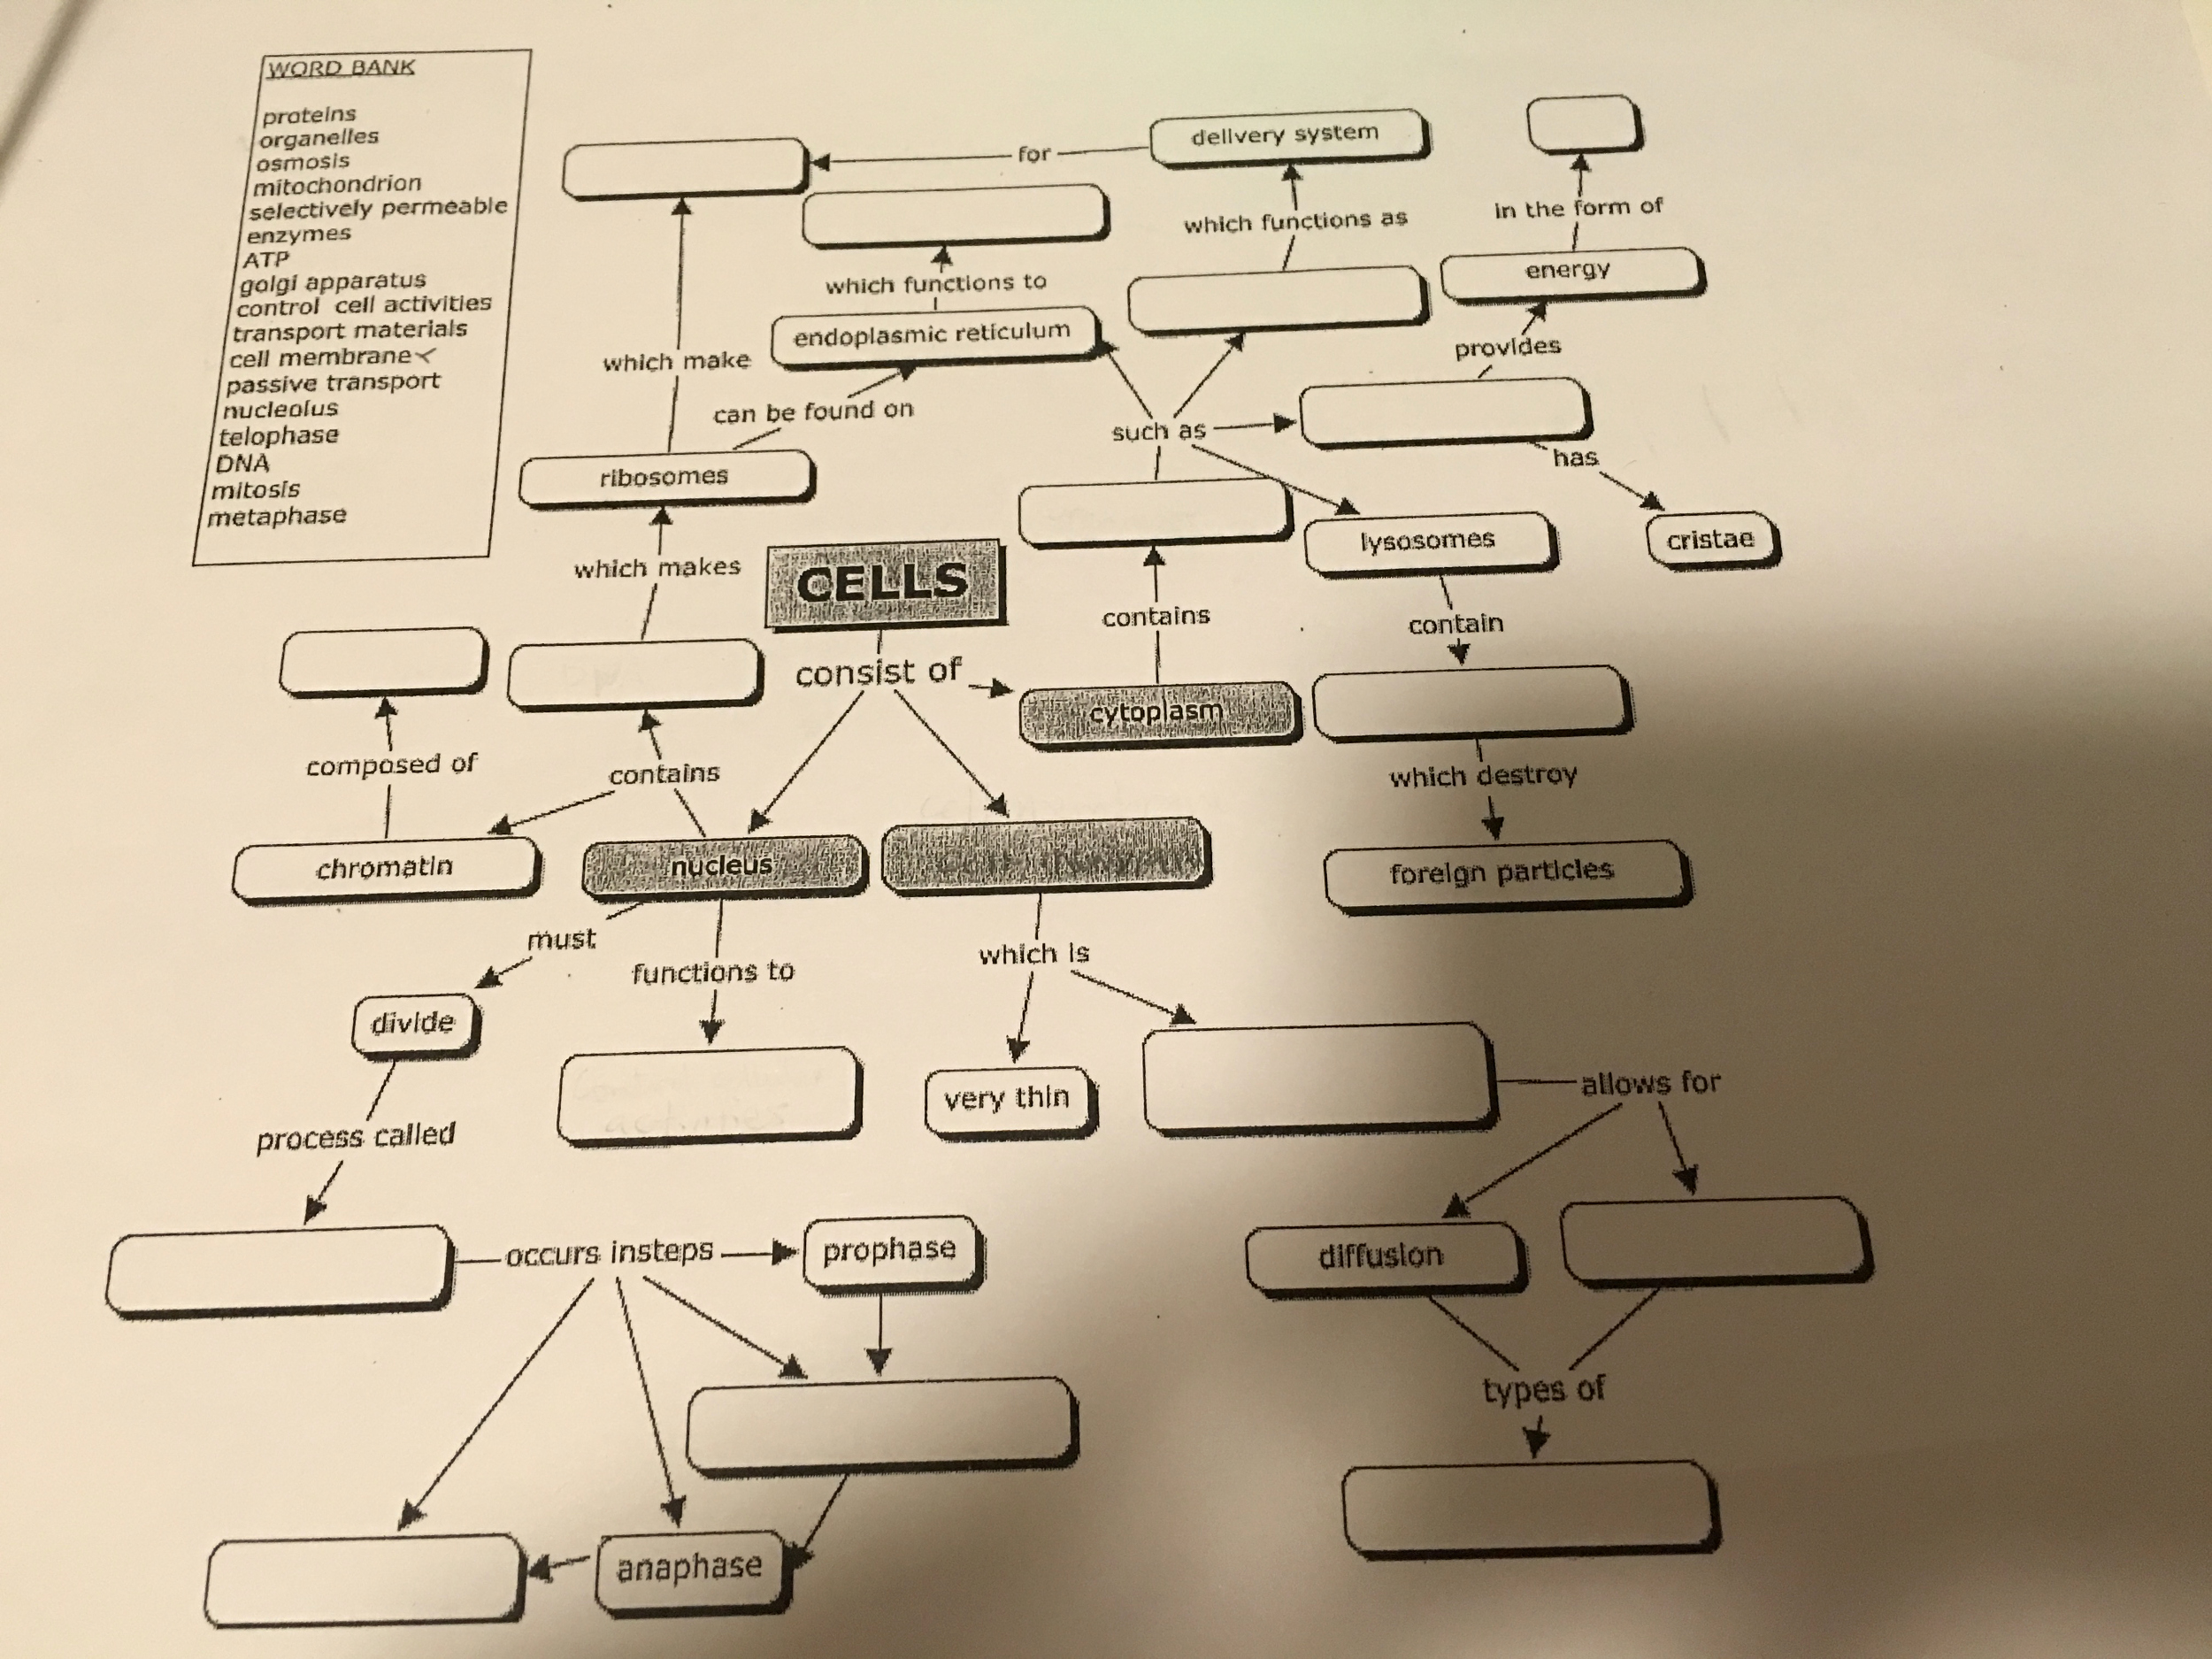 Cell Concept Map Worksheet Answers Fresh solved Word Bank Proteins organelles Osmosis Mitochondrio